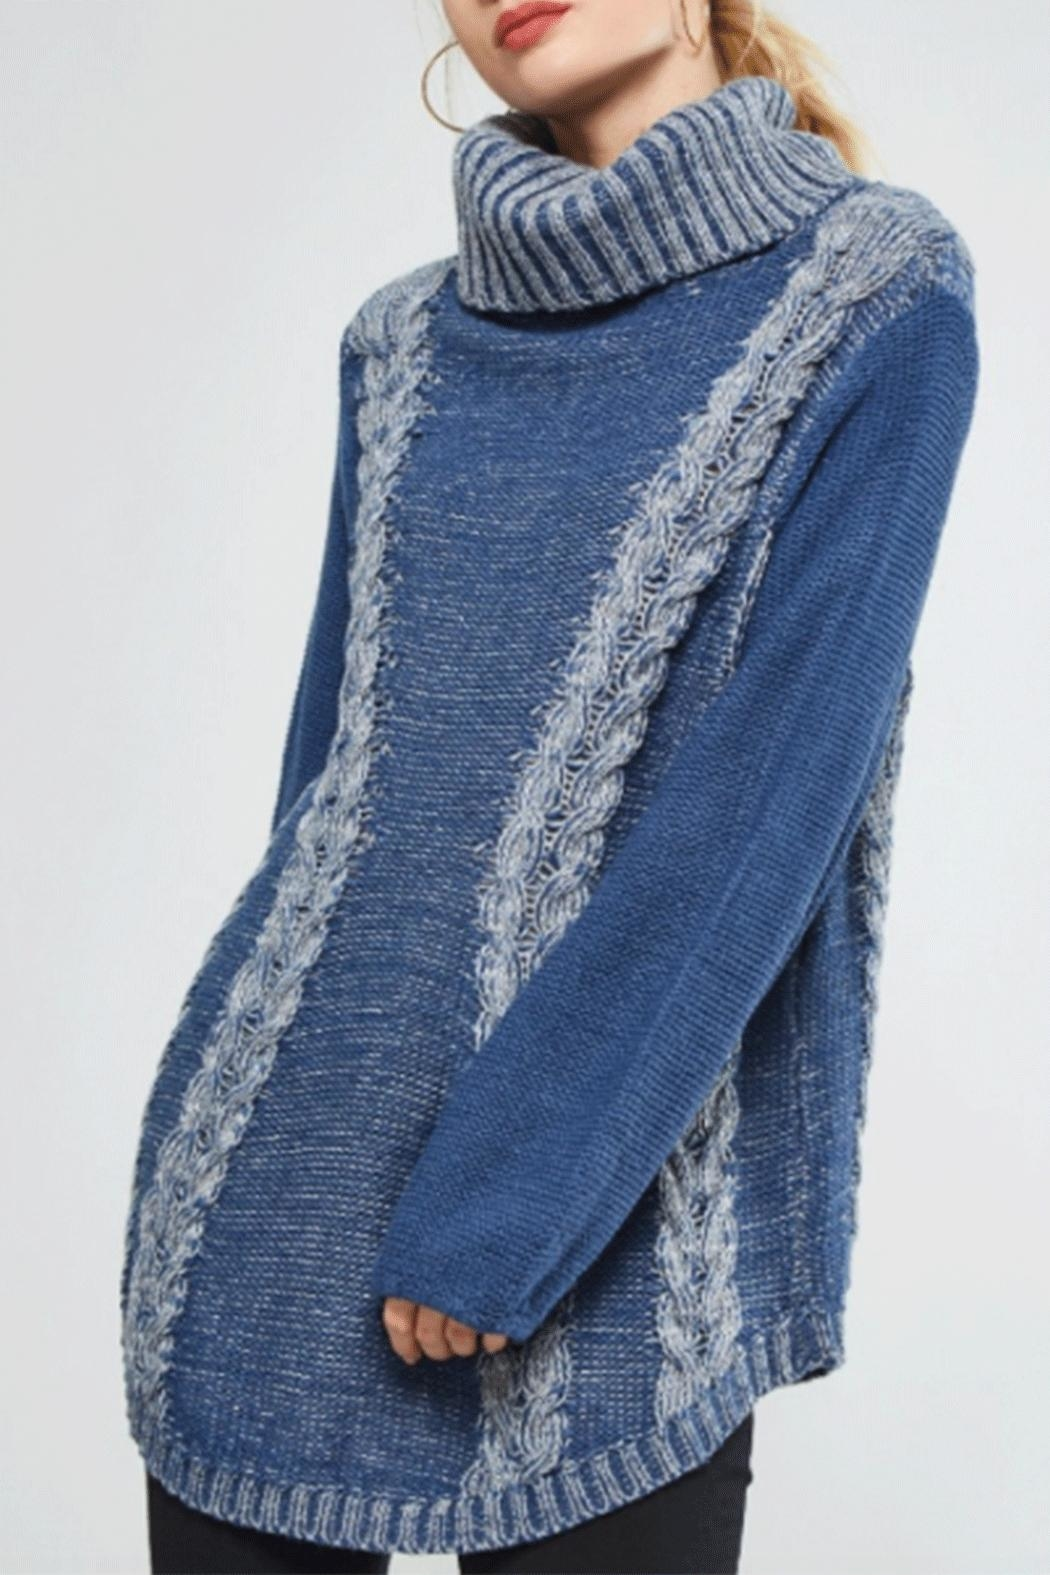 promosa Turtleneck Cableknit Sweater - Main Image